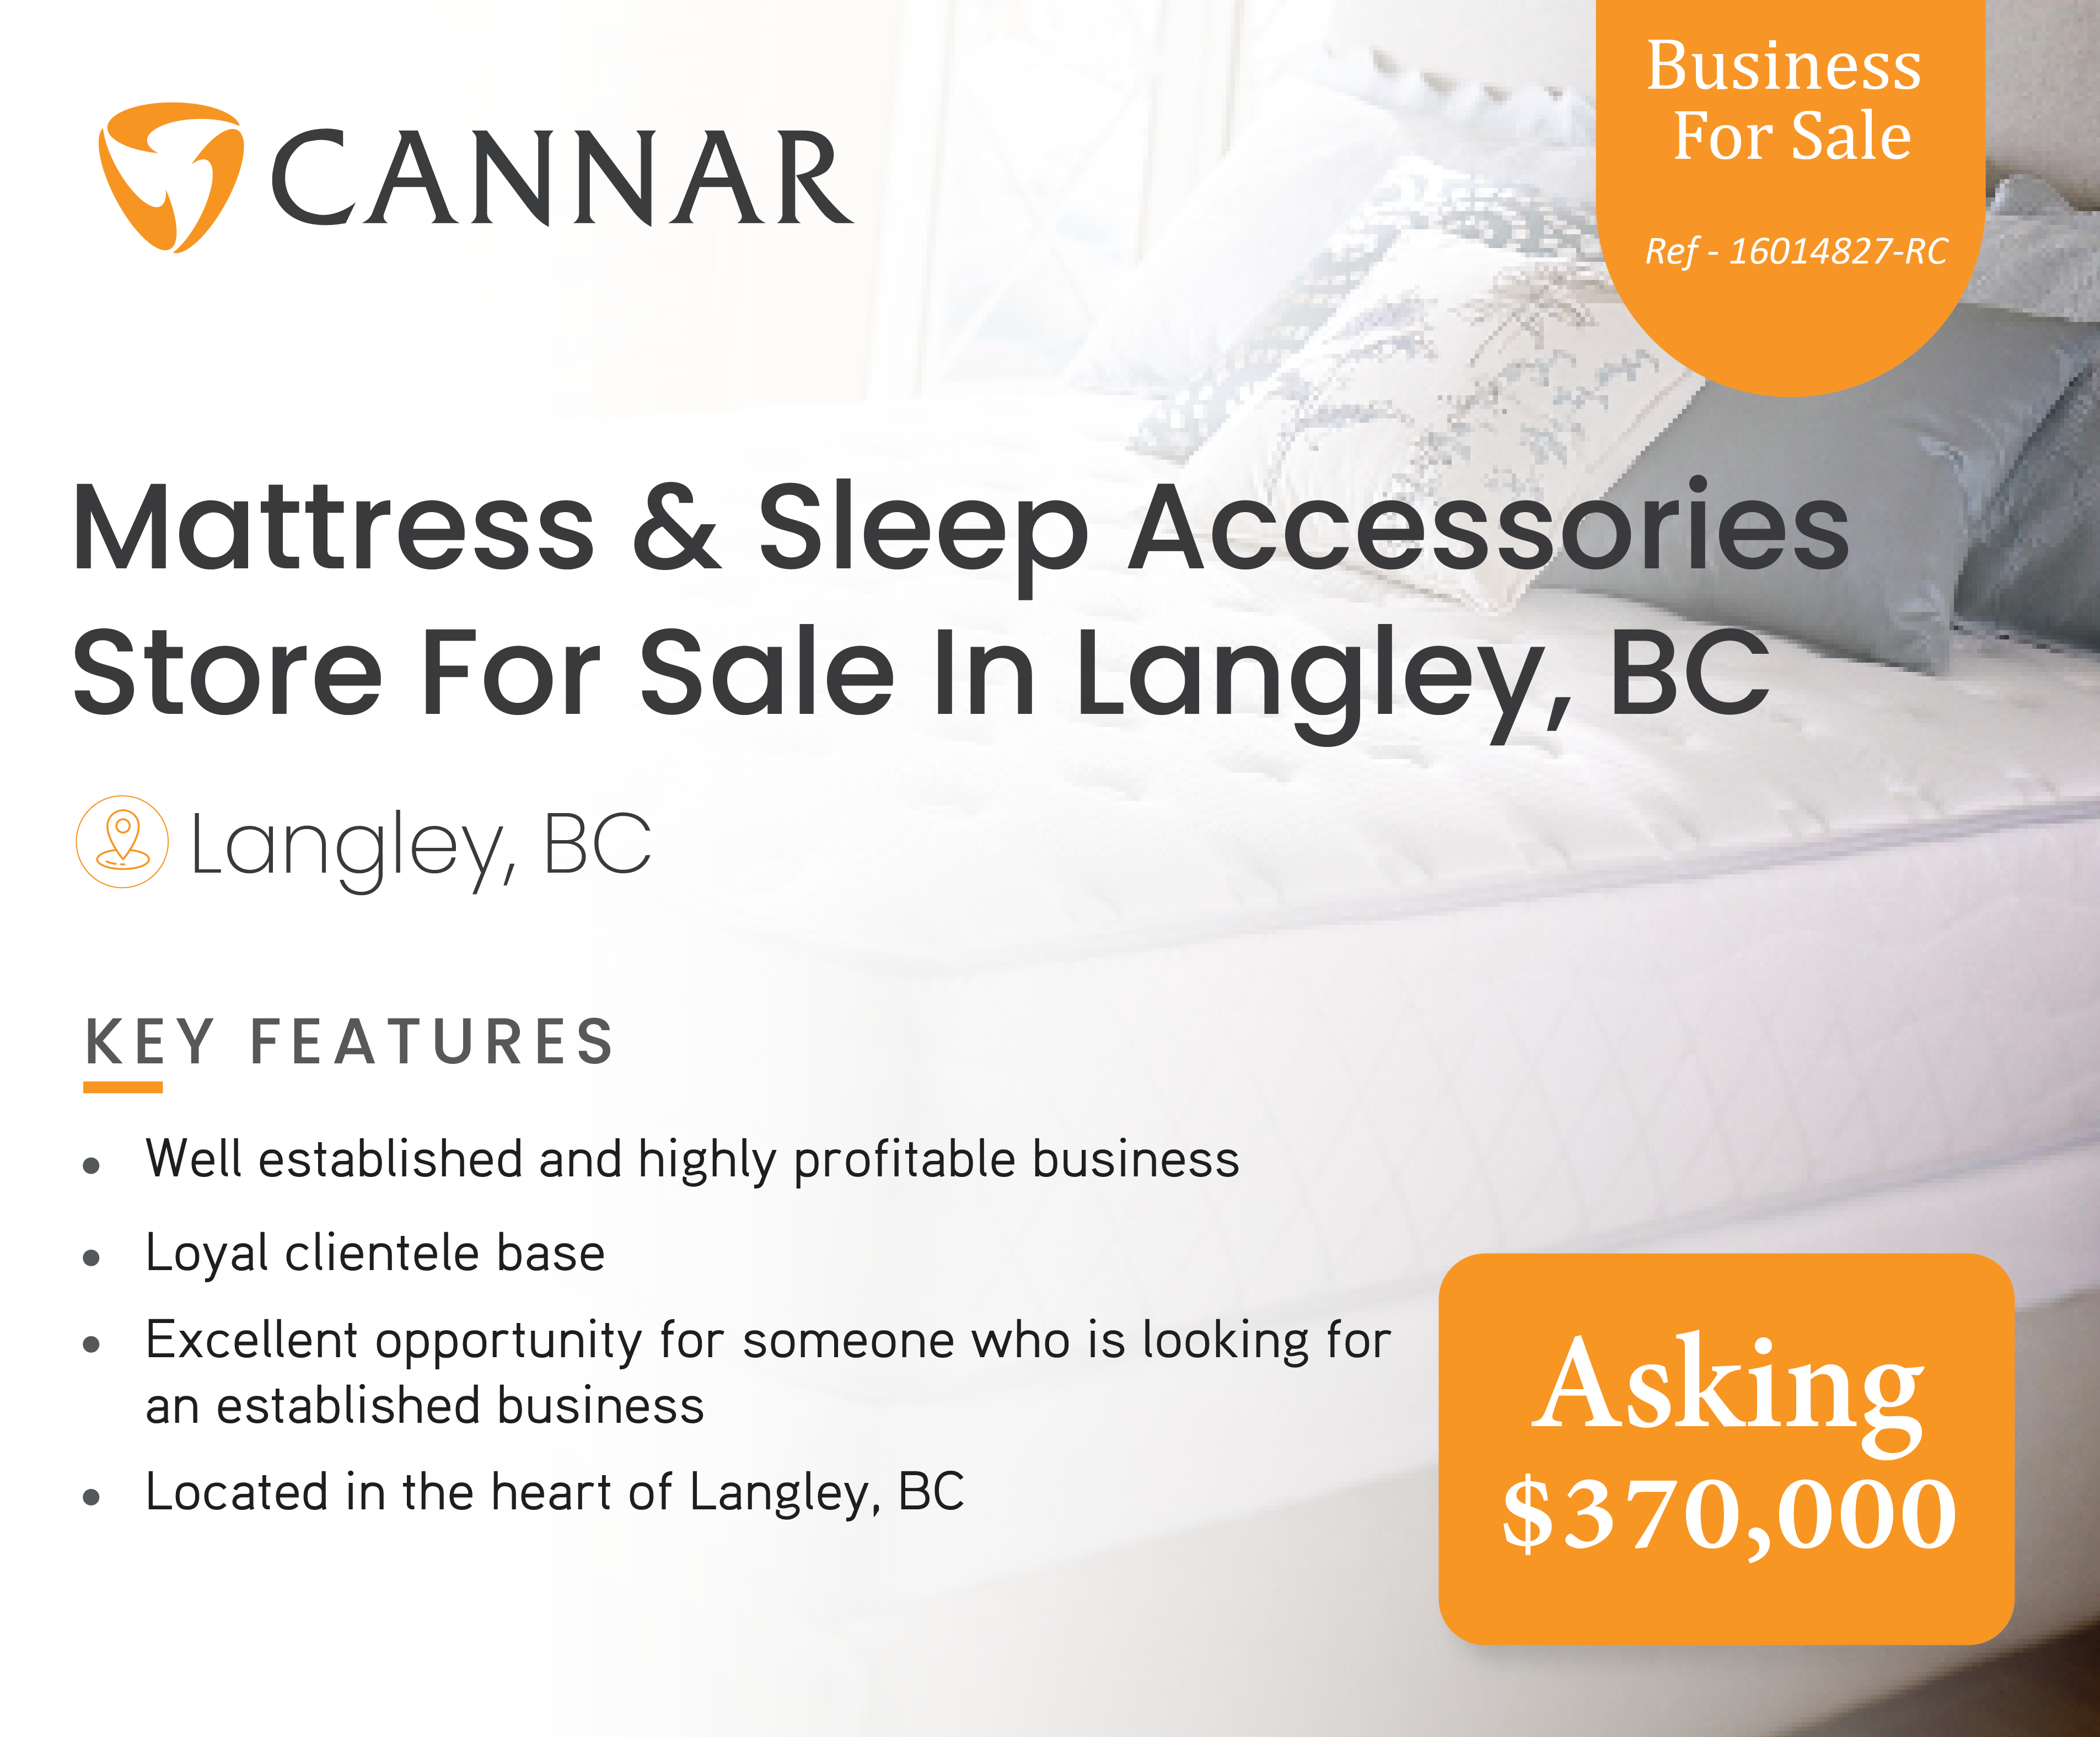 Mattress & Sleep Accessories  Store For Sale In Langley, BC